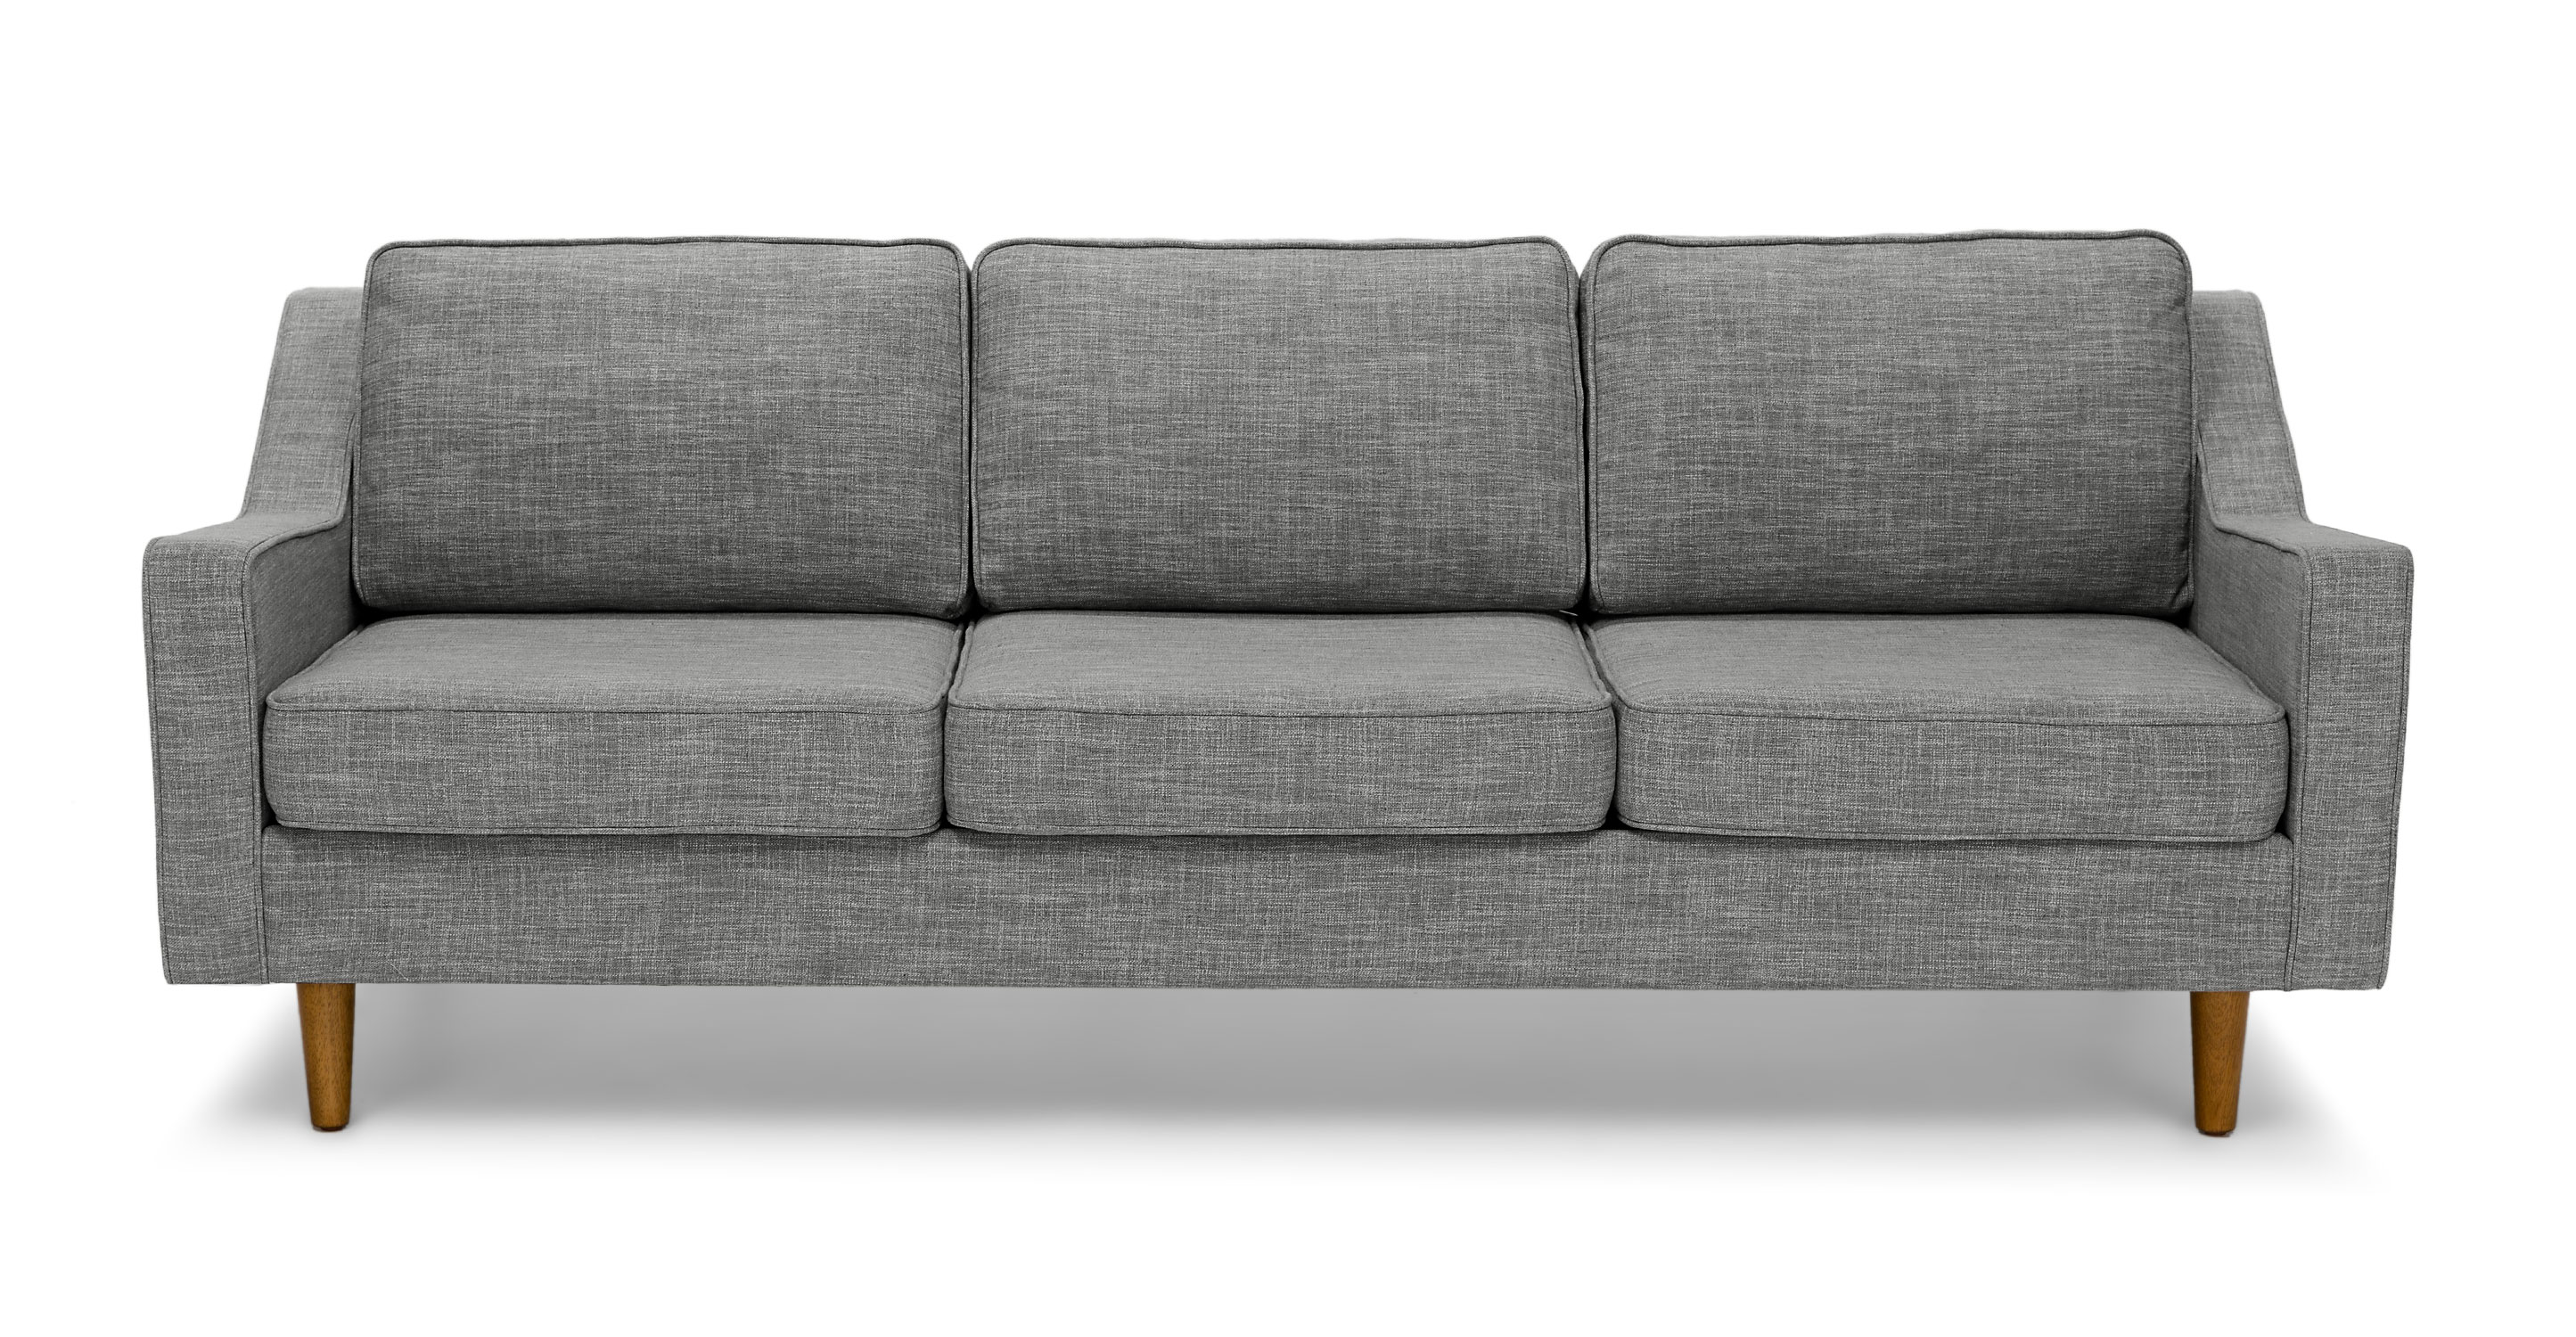 down sofas canada stickley orchard street sofa bed slope pebble gray article modern mid